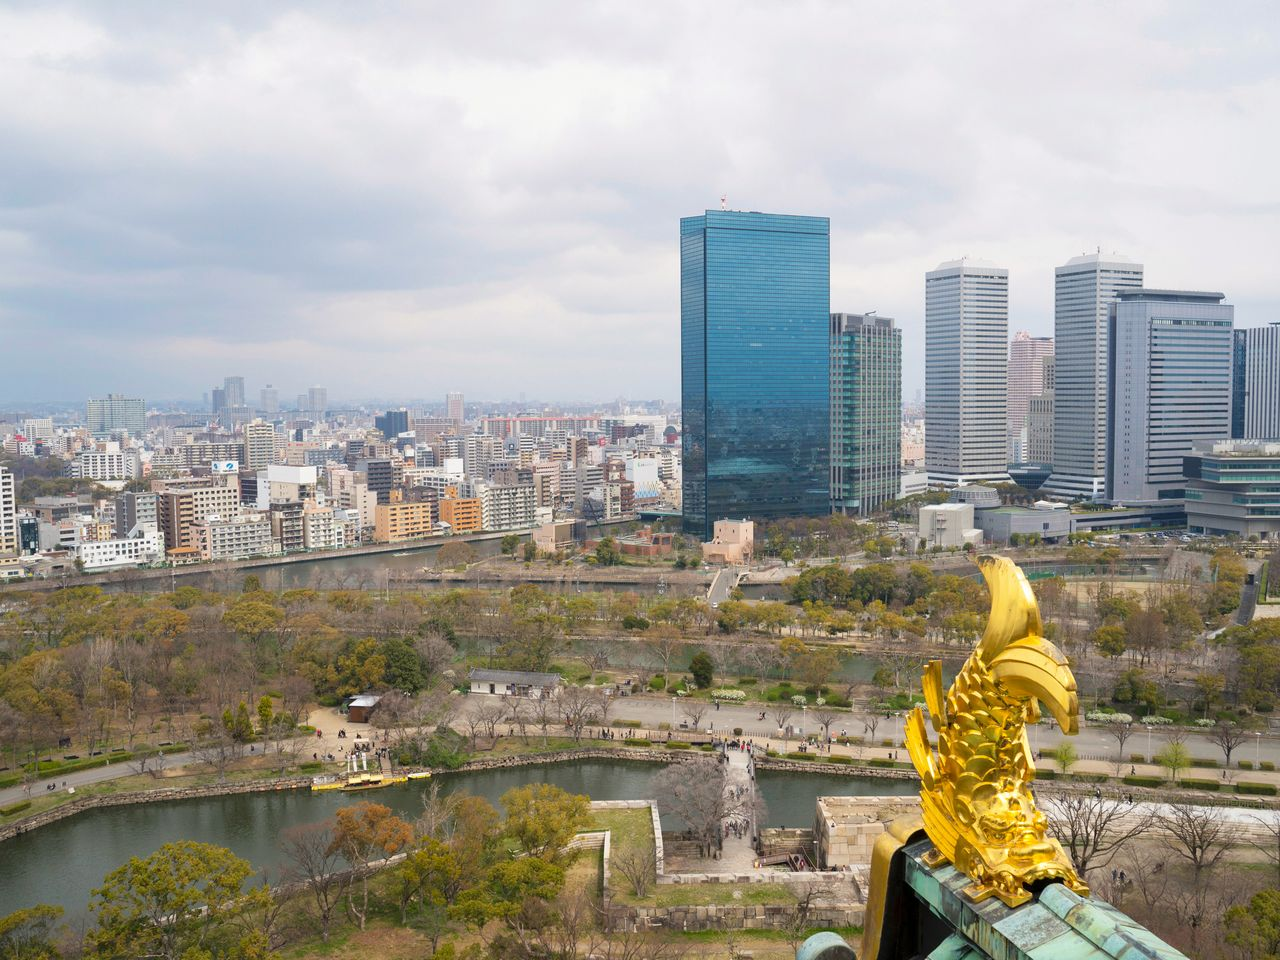 The superb view from the main tower of Osaka Castle.